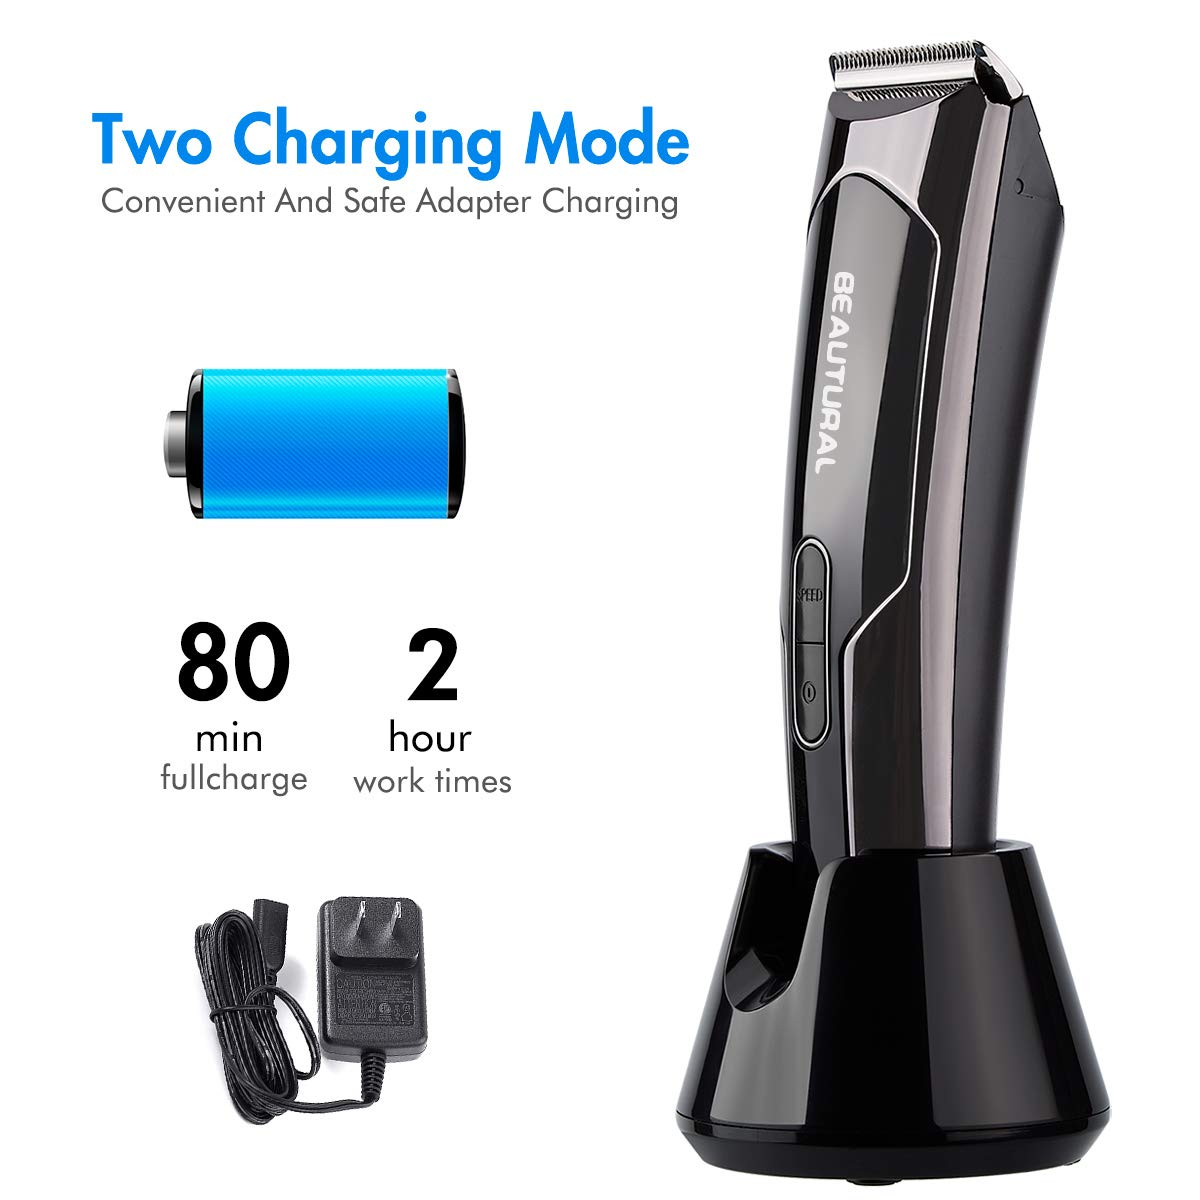 Beautural Professional Cordless Hair Clippers, Heavy Duty Rechargeable Hair Trimmer and Hair Cutting Kit with Charging Base, 6 Guide Combs, and Comb by Beautural (Image #6)